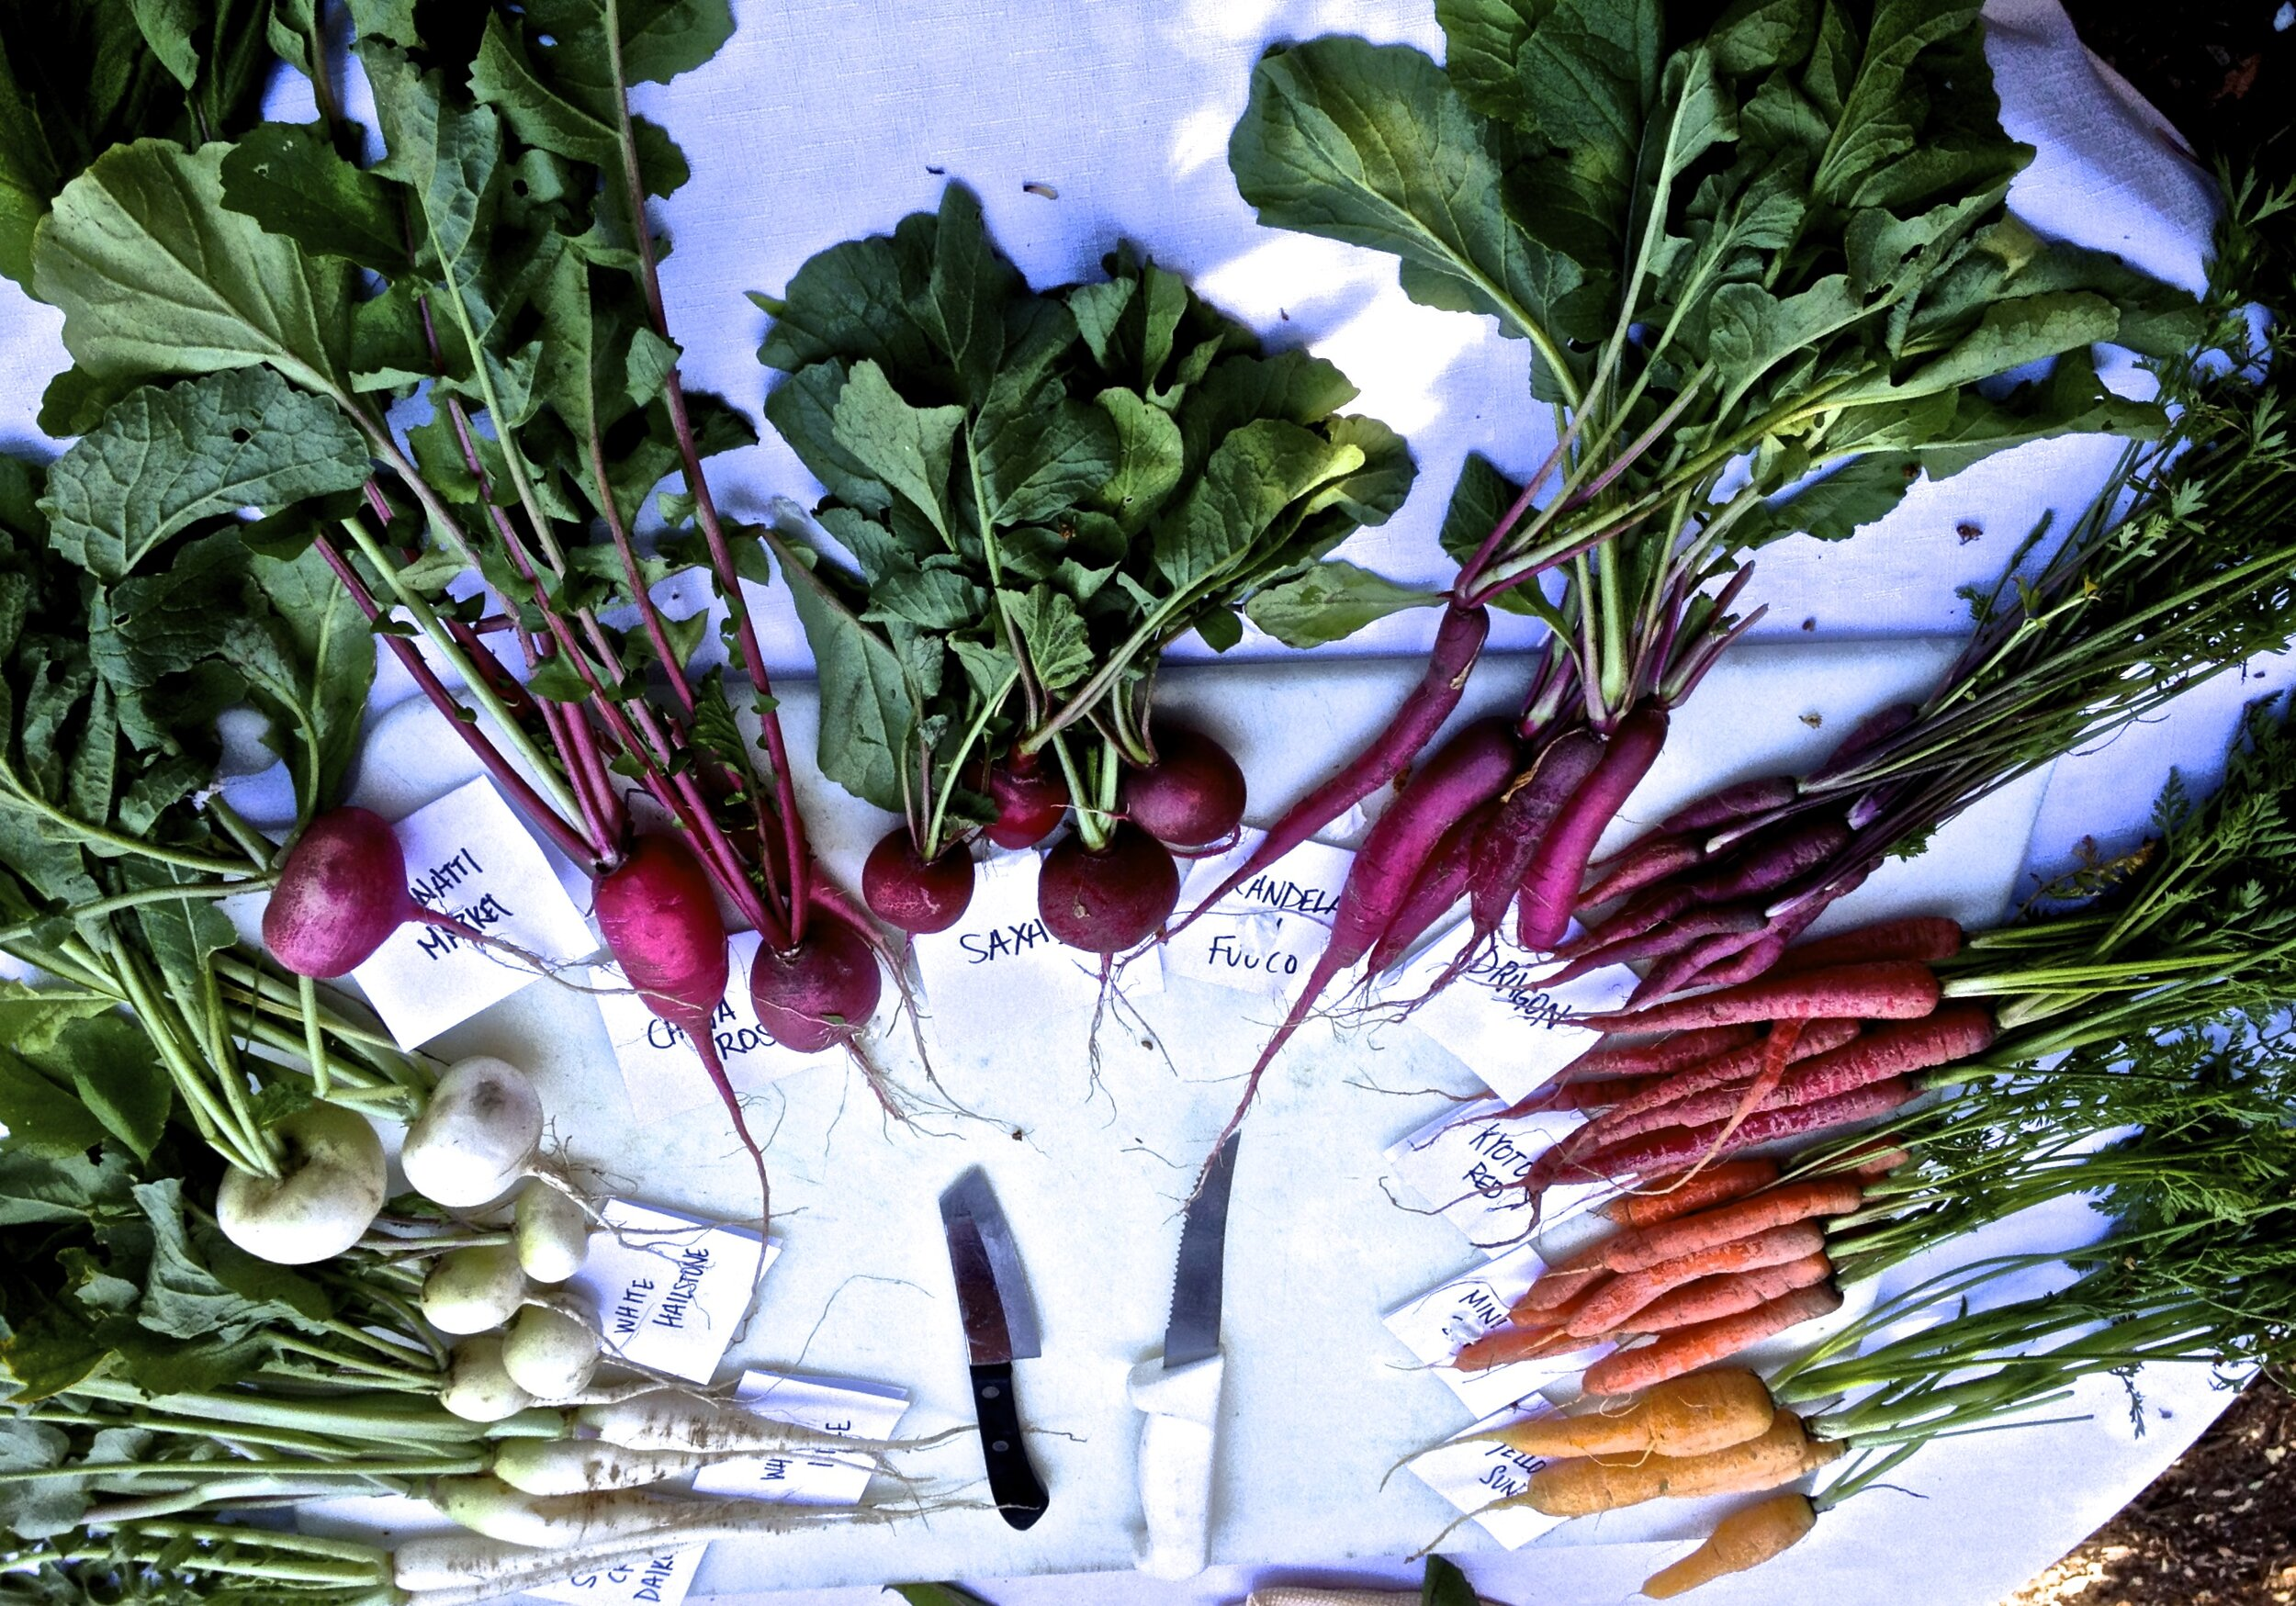 Carrots in all colors: Madison is a champion of fresh, local produce